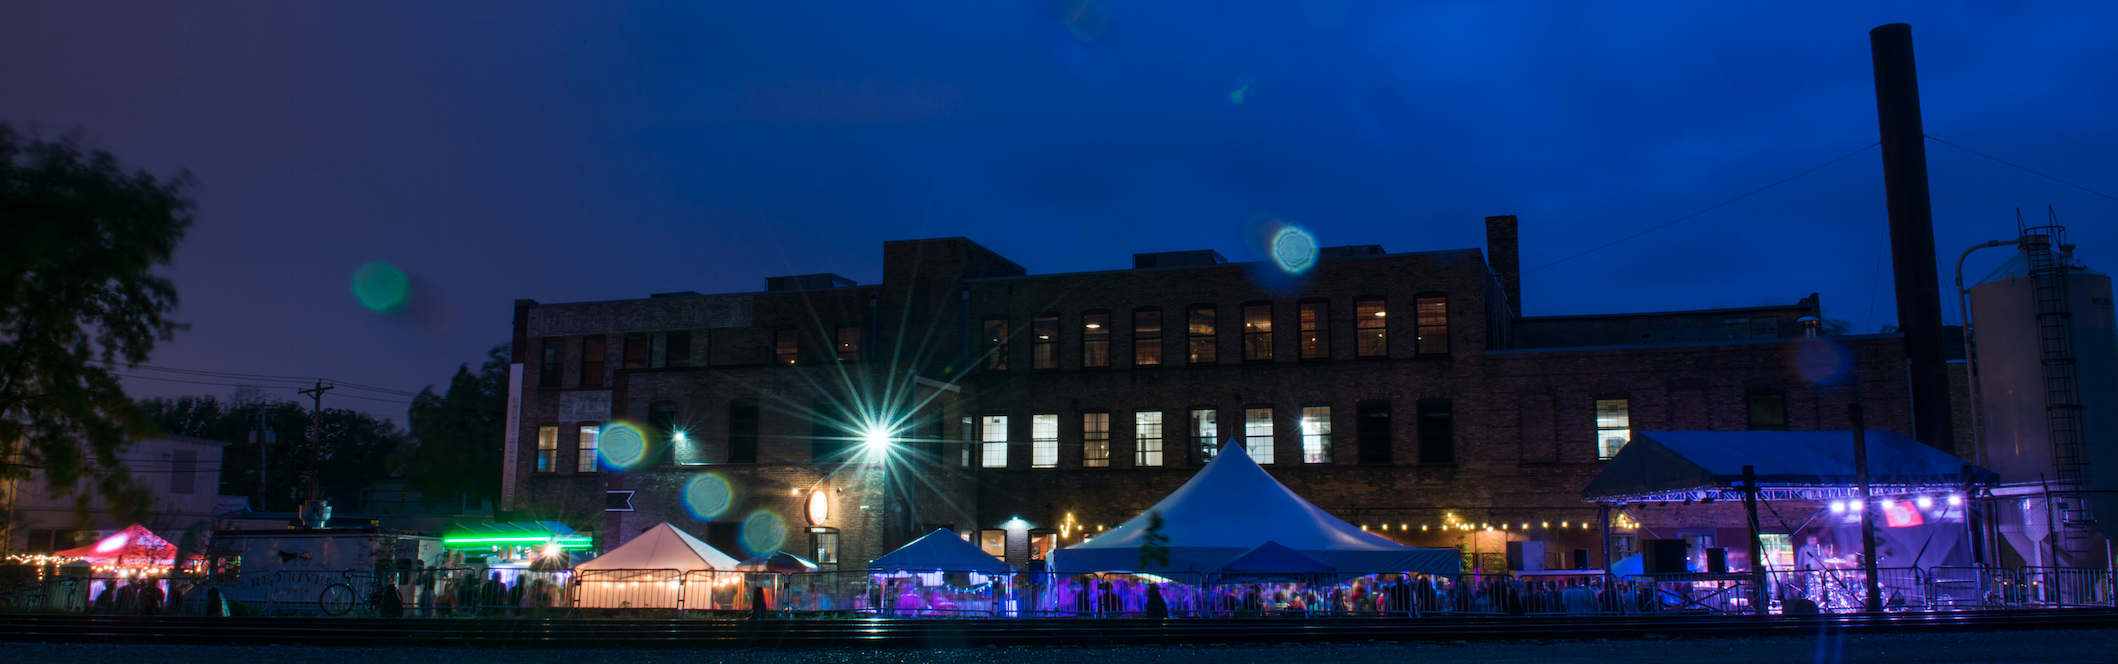 A sweet little nightshot of Whirlygig 2015, Indeed's annual festival at the brewery.